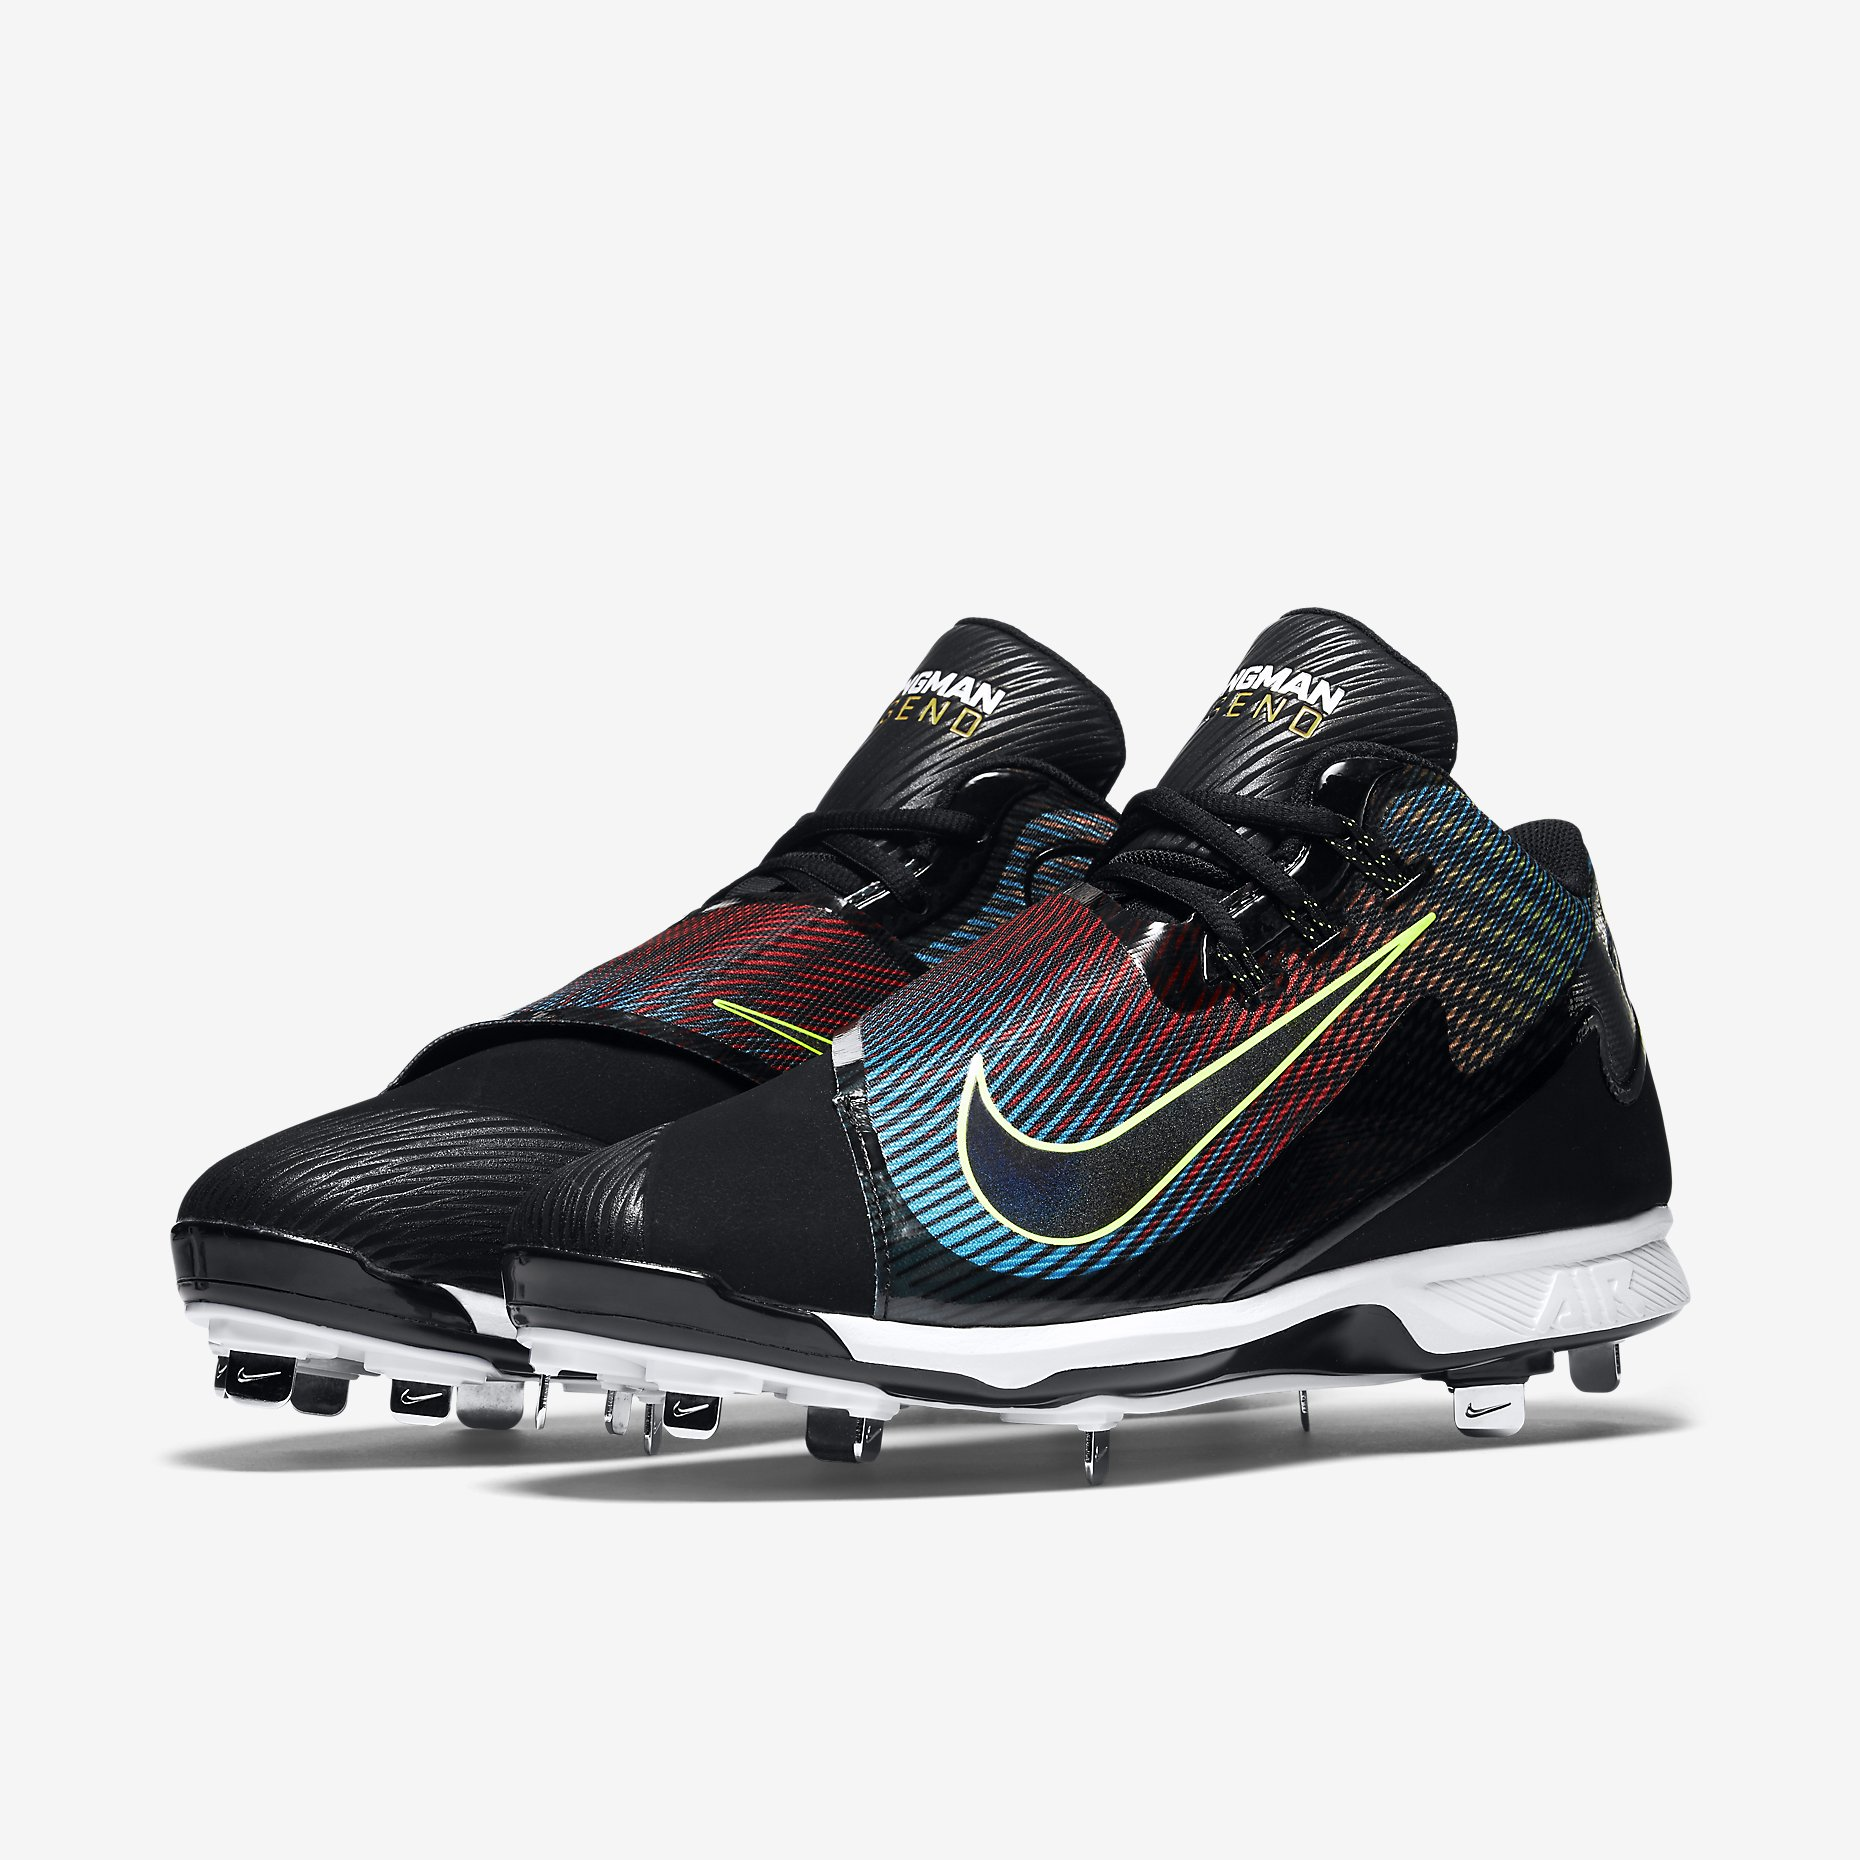 buy online 5d36f 926dd The Kid Griffey Jr. wearing the BEST cleats in the Game!   Page 84 ...